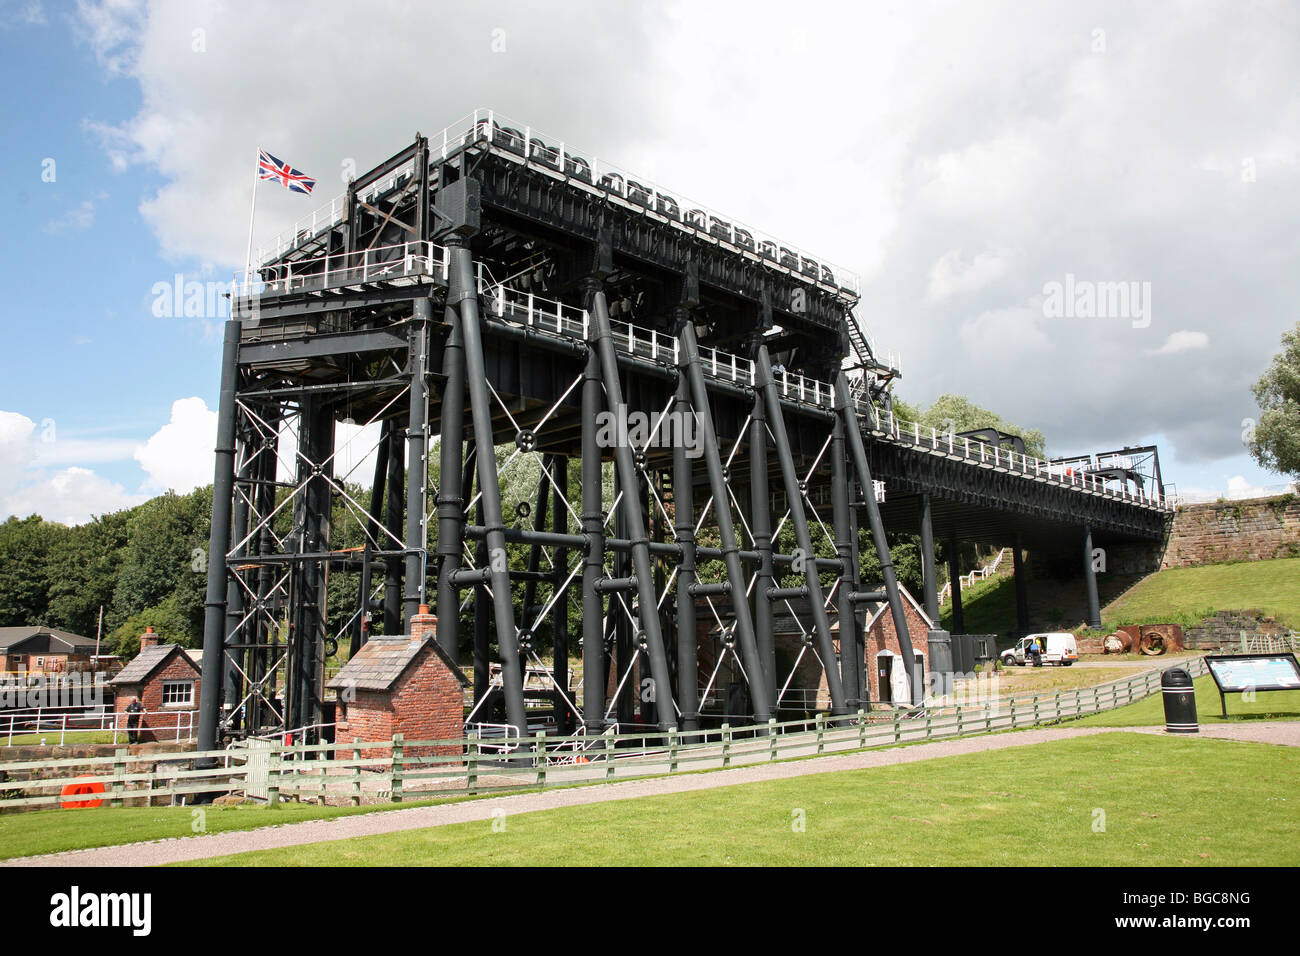 Scenic Anderton Boat Lift Anderton Cheshire England Stock Photo  With Fetching Anderton Boat Lift Anderton Cheshire England Stock Photo With Astounding Savile Gardens Also Apartment With Garden In Addition Garden Design With Railway Sleepers And Floating Garden As Well As Victorian Terrace Front Garden Additionally India Garden Indianapolis From Alamycom With   Fetching Anderton Boat Lift Anderton Cheshire England Stock Photo  With Astounding Anderton Boat Lift Anderton Cheshire England Stock Photo And Scenic Savile Gardens Also Apartment With Garden In Addition Garden Design With Railway Sleepers From Alamycom